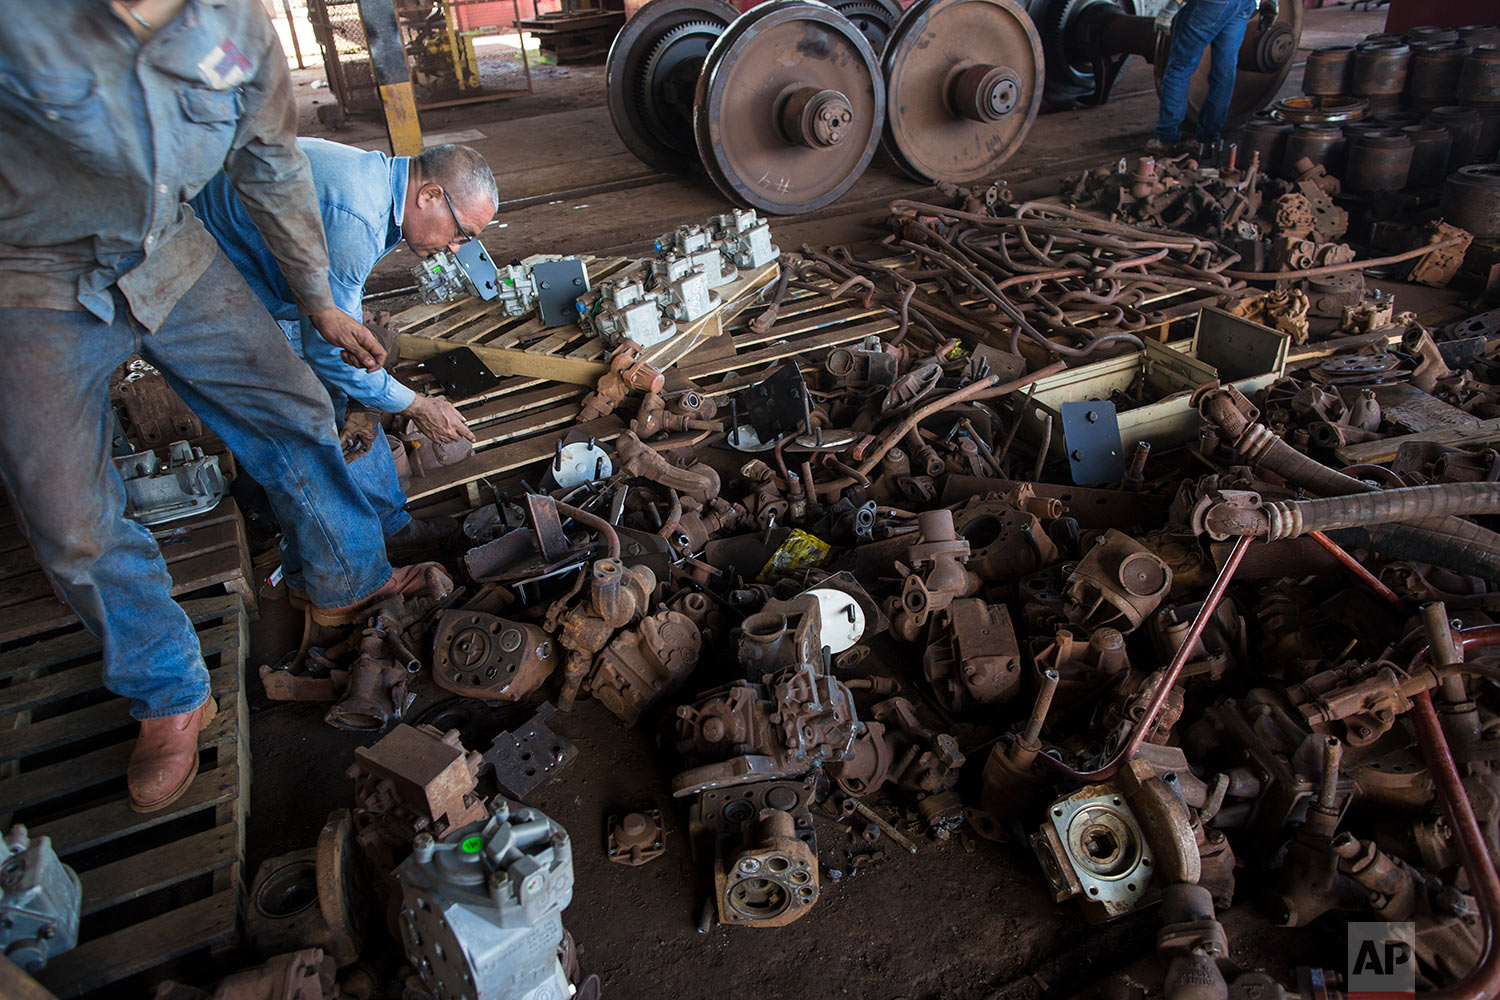 In this Nov. 1, 2017 photo, workers look for spares form a pile of parts cannibalized from other locomotives at Ferrominera Orinoco, in Ciudad Guayana, Bolivar state, Venezuela. Finding spare parts stripped from one broken-down locomotive to repair another in a desperate attempt to keep a once-thriving iron ore mining company running. (AP Photo/Rodrigo Abd)